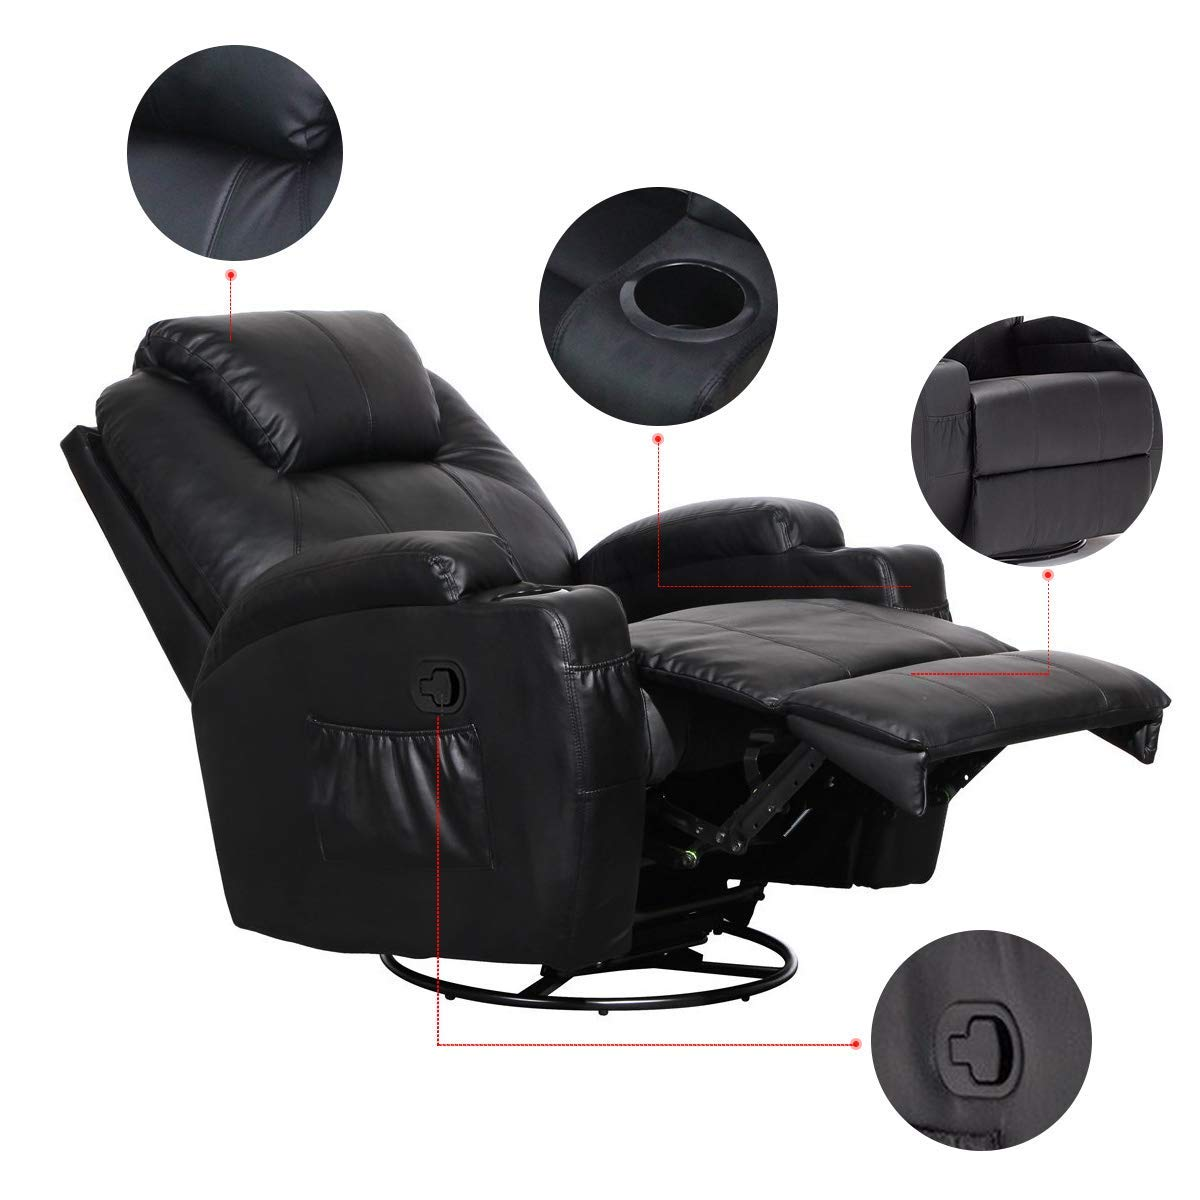 Massage Recliner Chair, 360 Degree Swivel and Heated Recliner Bonded Leather Sofa Chair with 8 Vibration Motors£¬Black